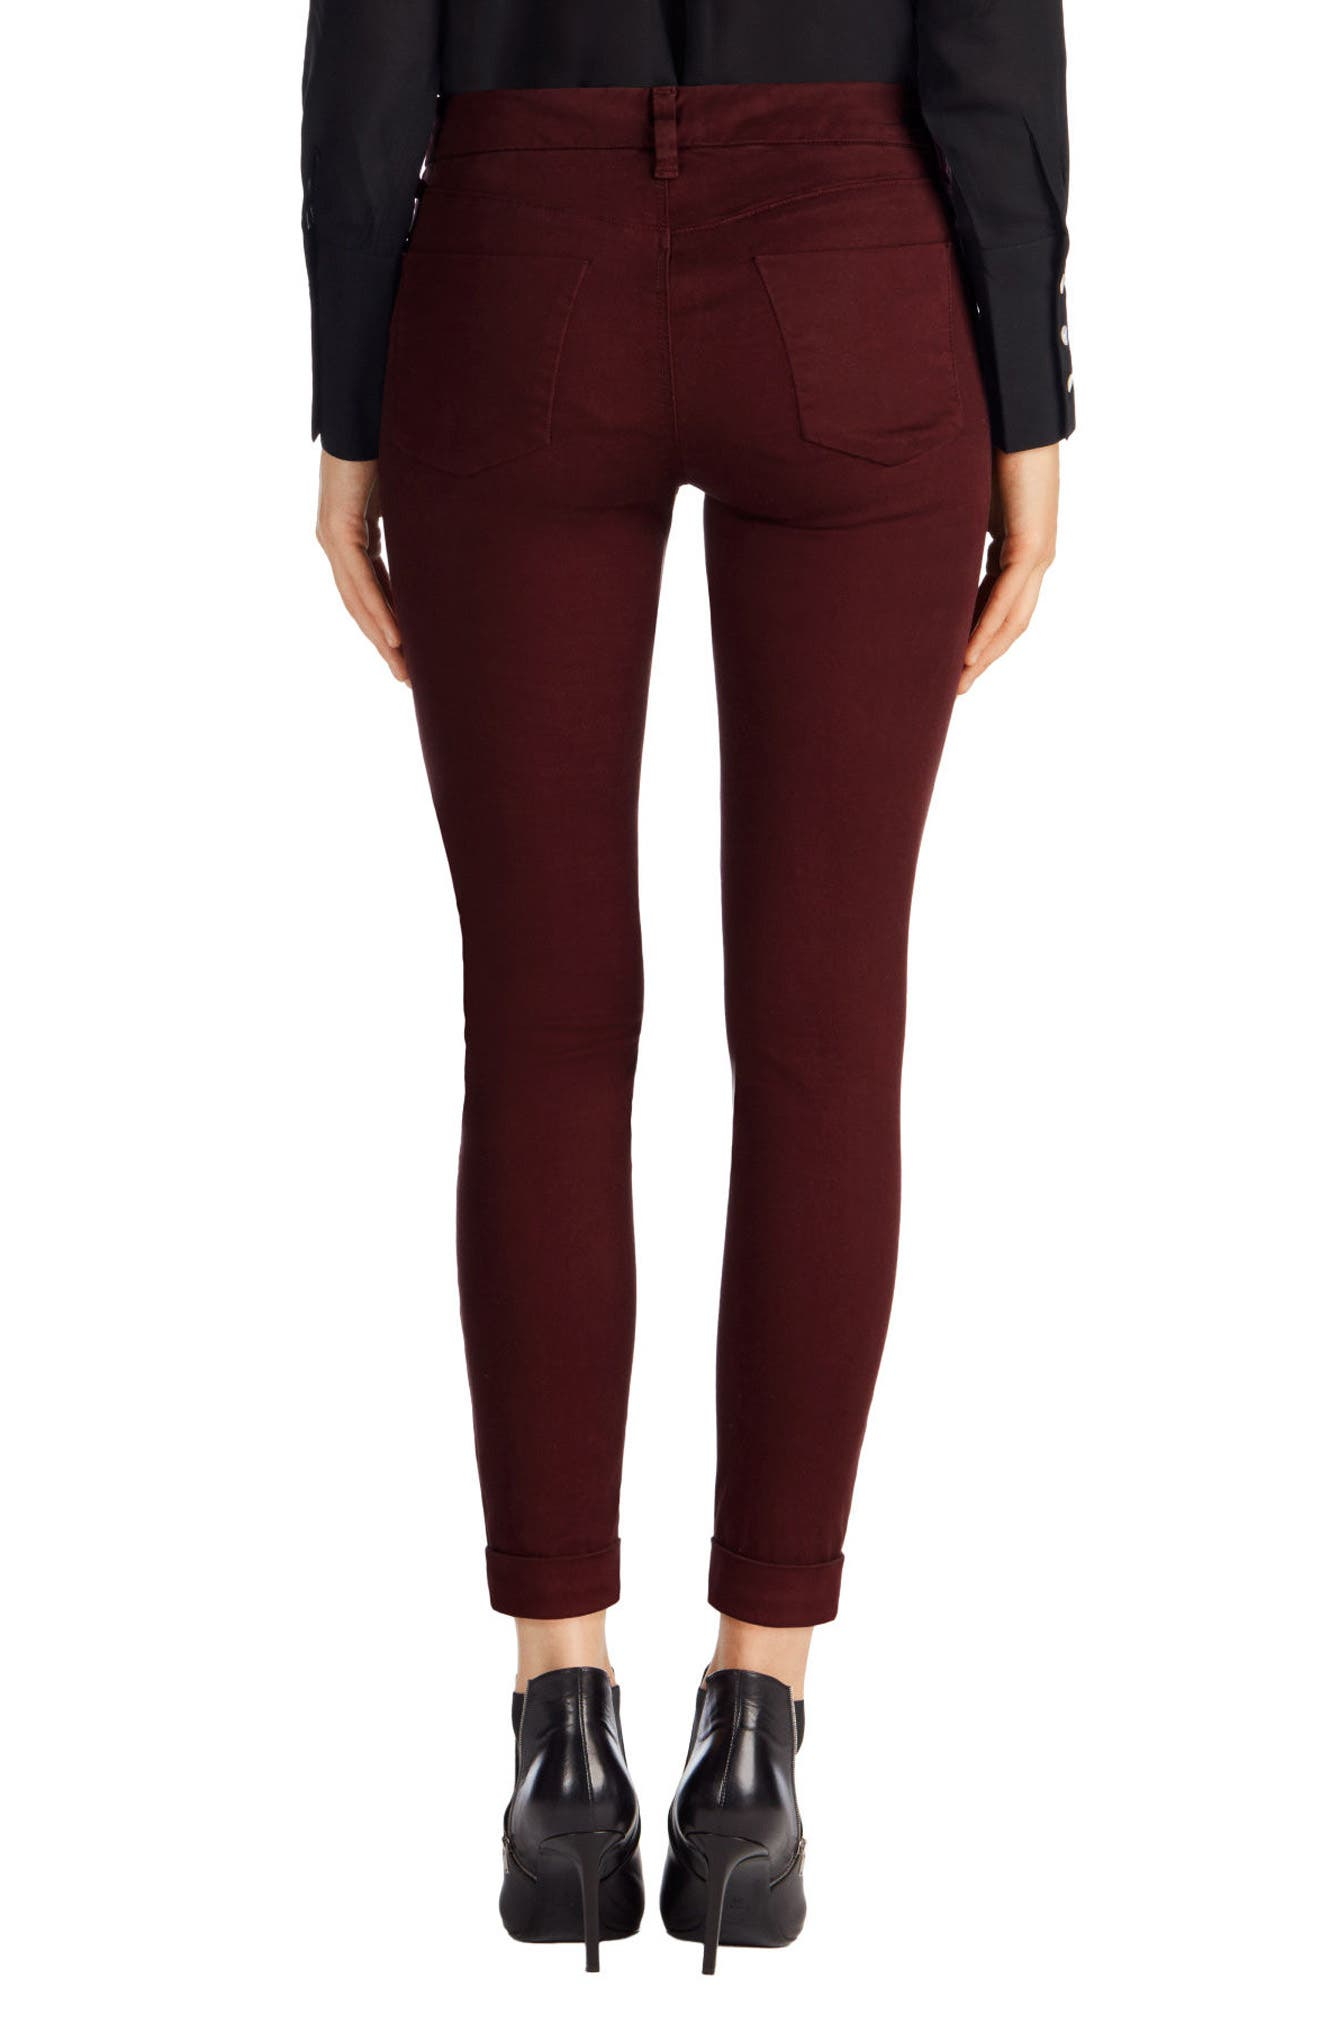 'Anja' Cuffed Crop Skinny Jeans,                             Alternate thumbnail 21, color,